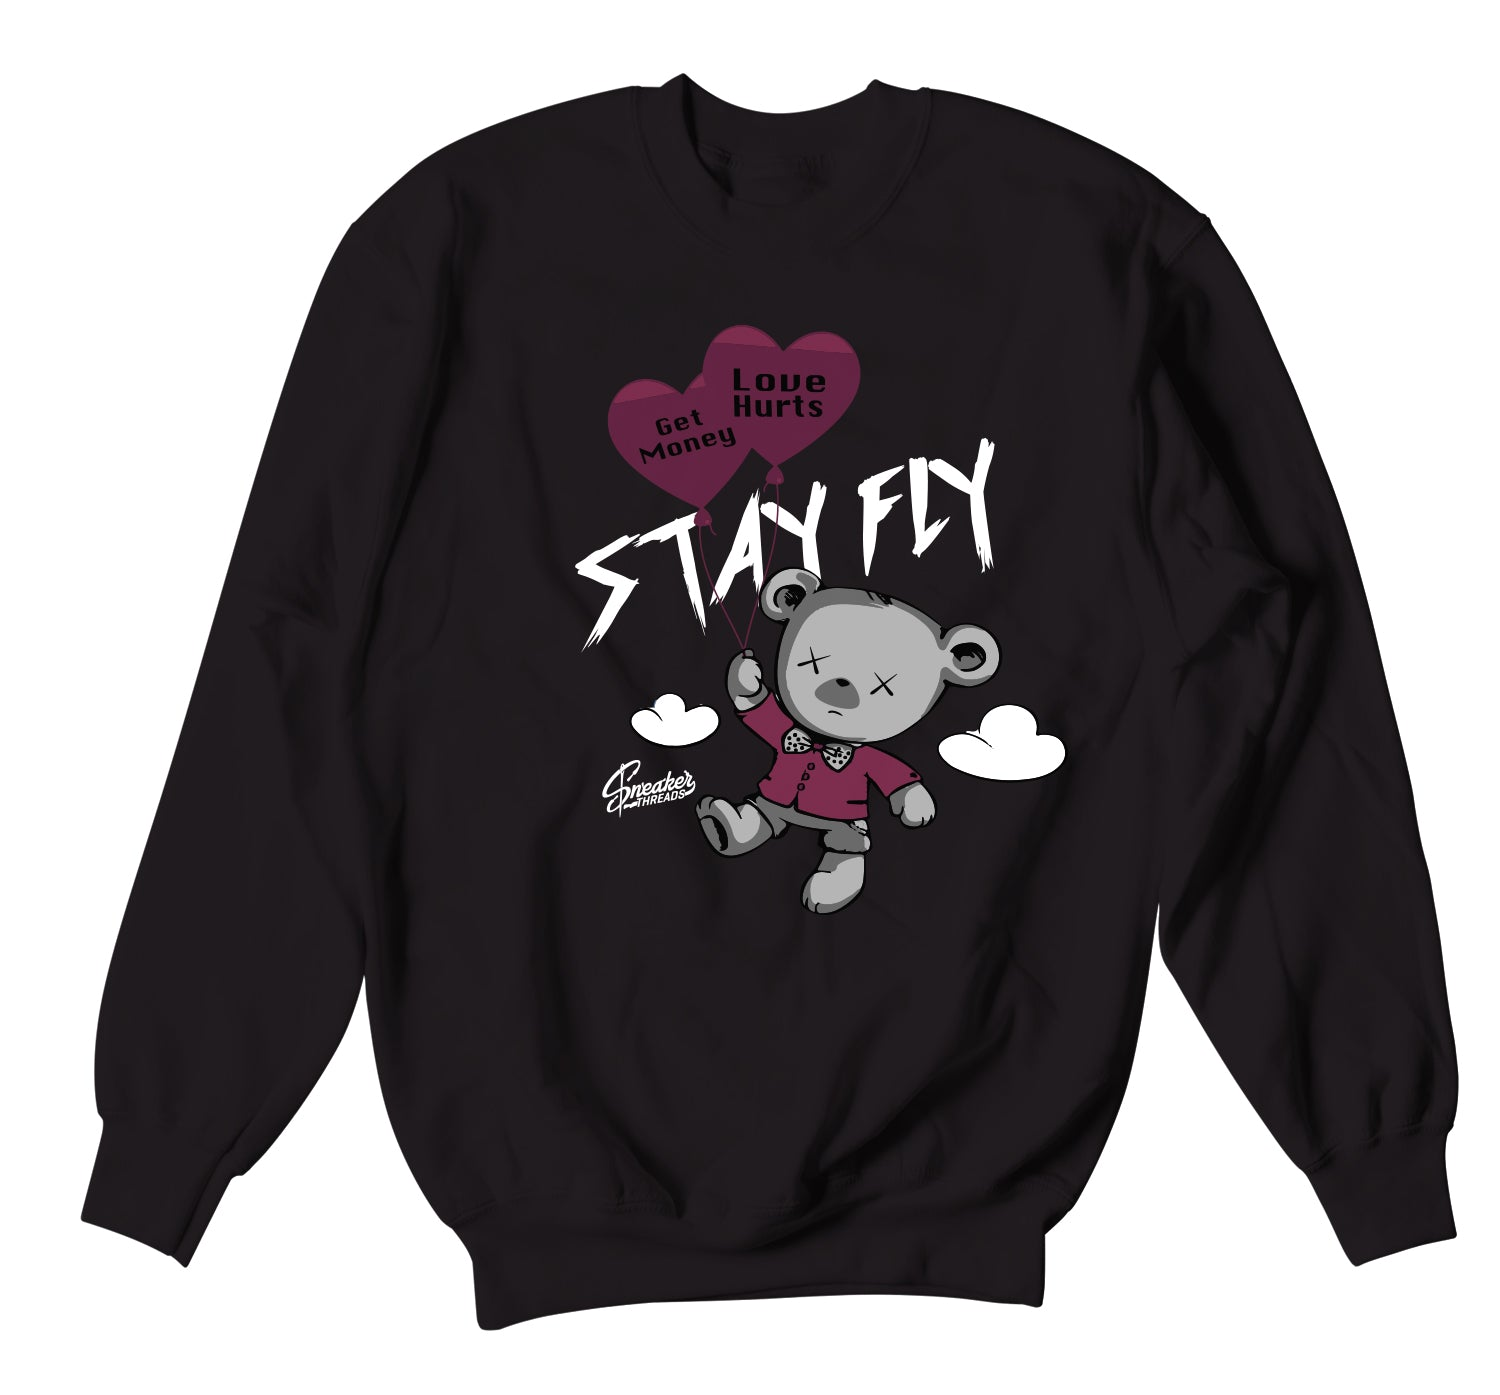 Jordan 6 Singles Day Sweater - Money Over Love - Black